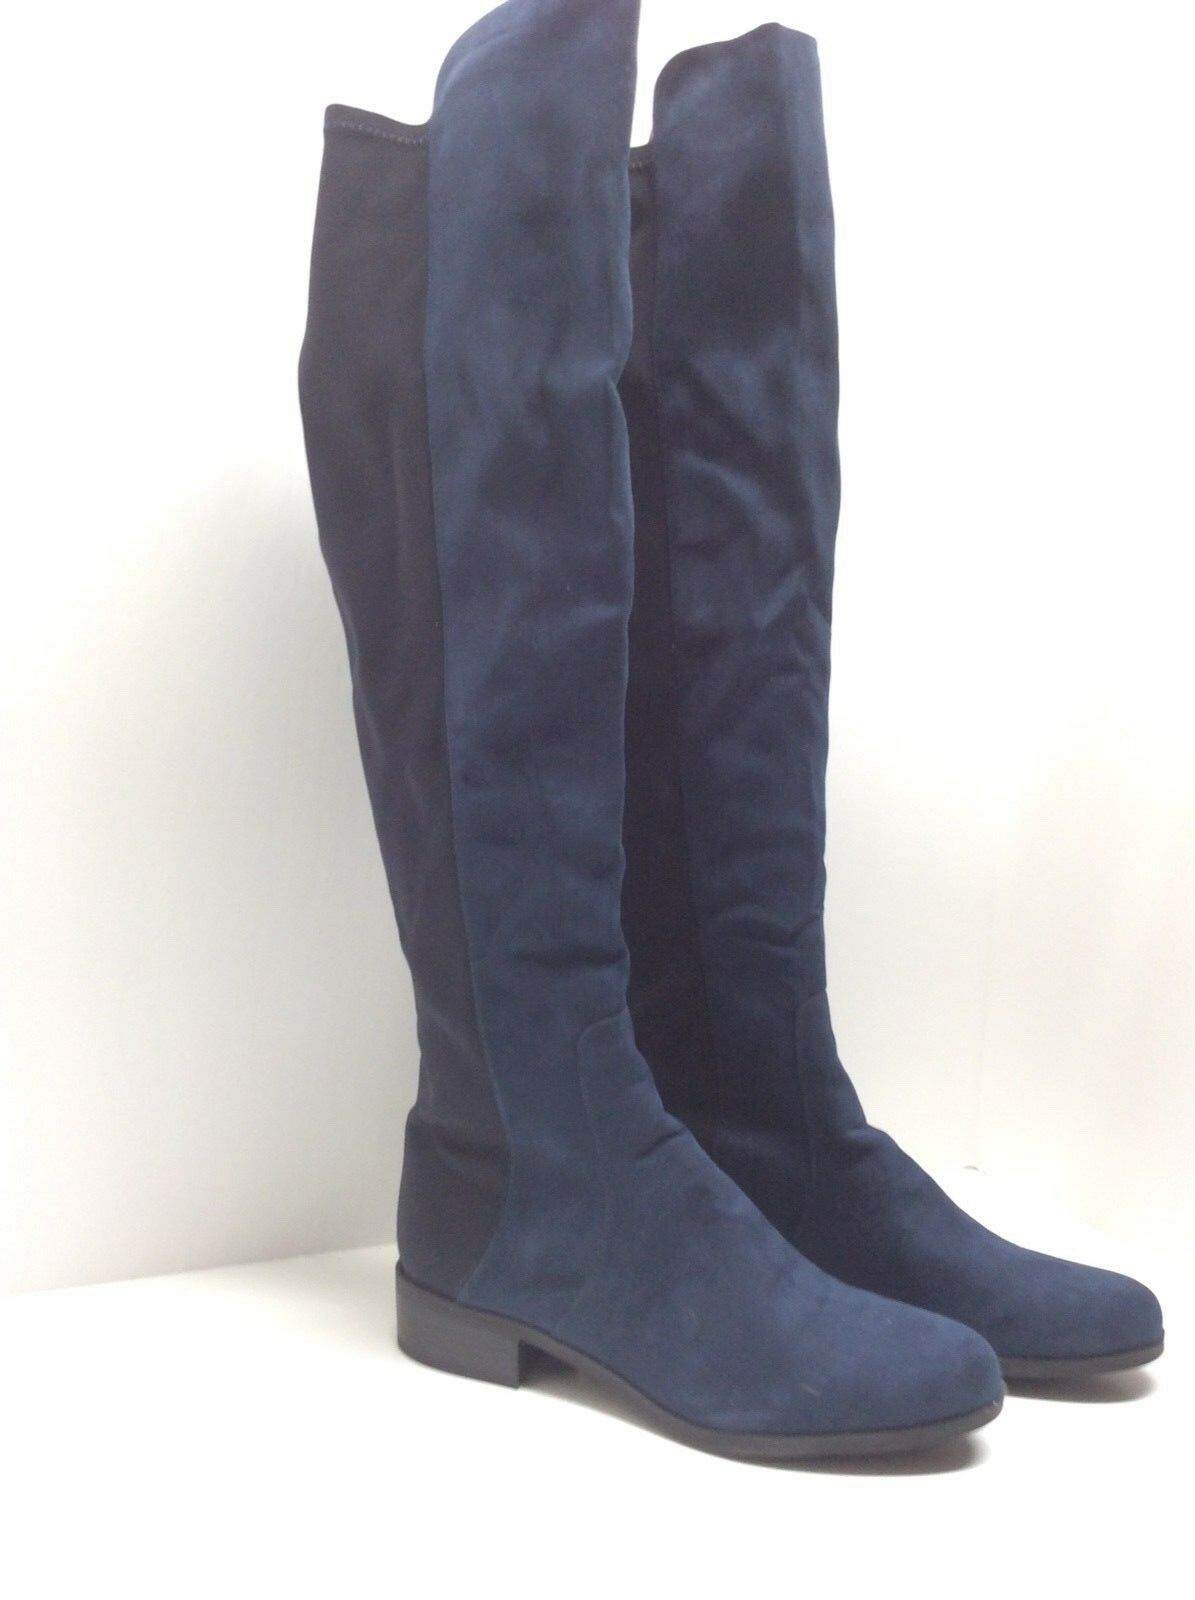 Unisa    Indyia  Stretch Over The Knee Boot Navy Black Size 6.5M   38-2 ab1540